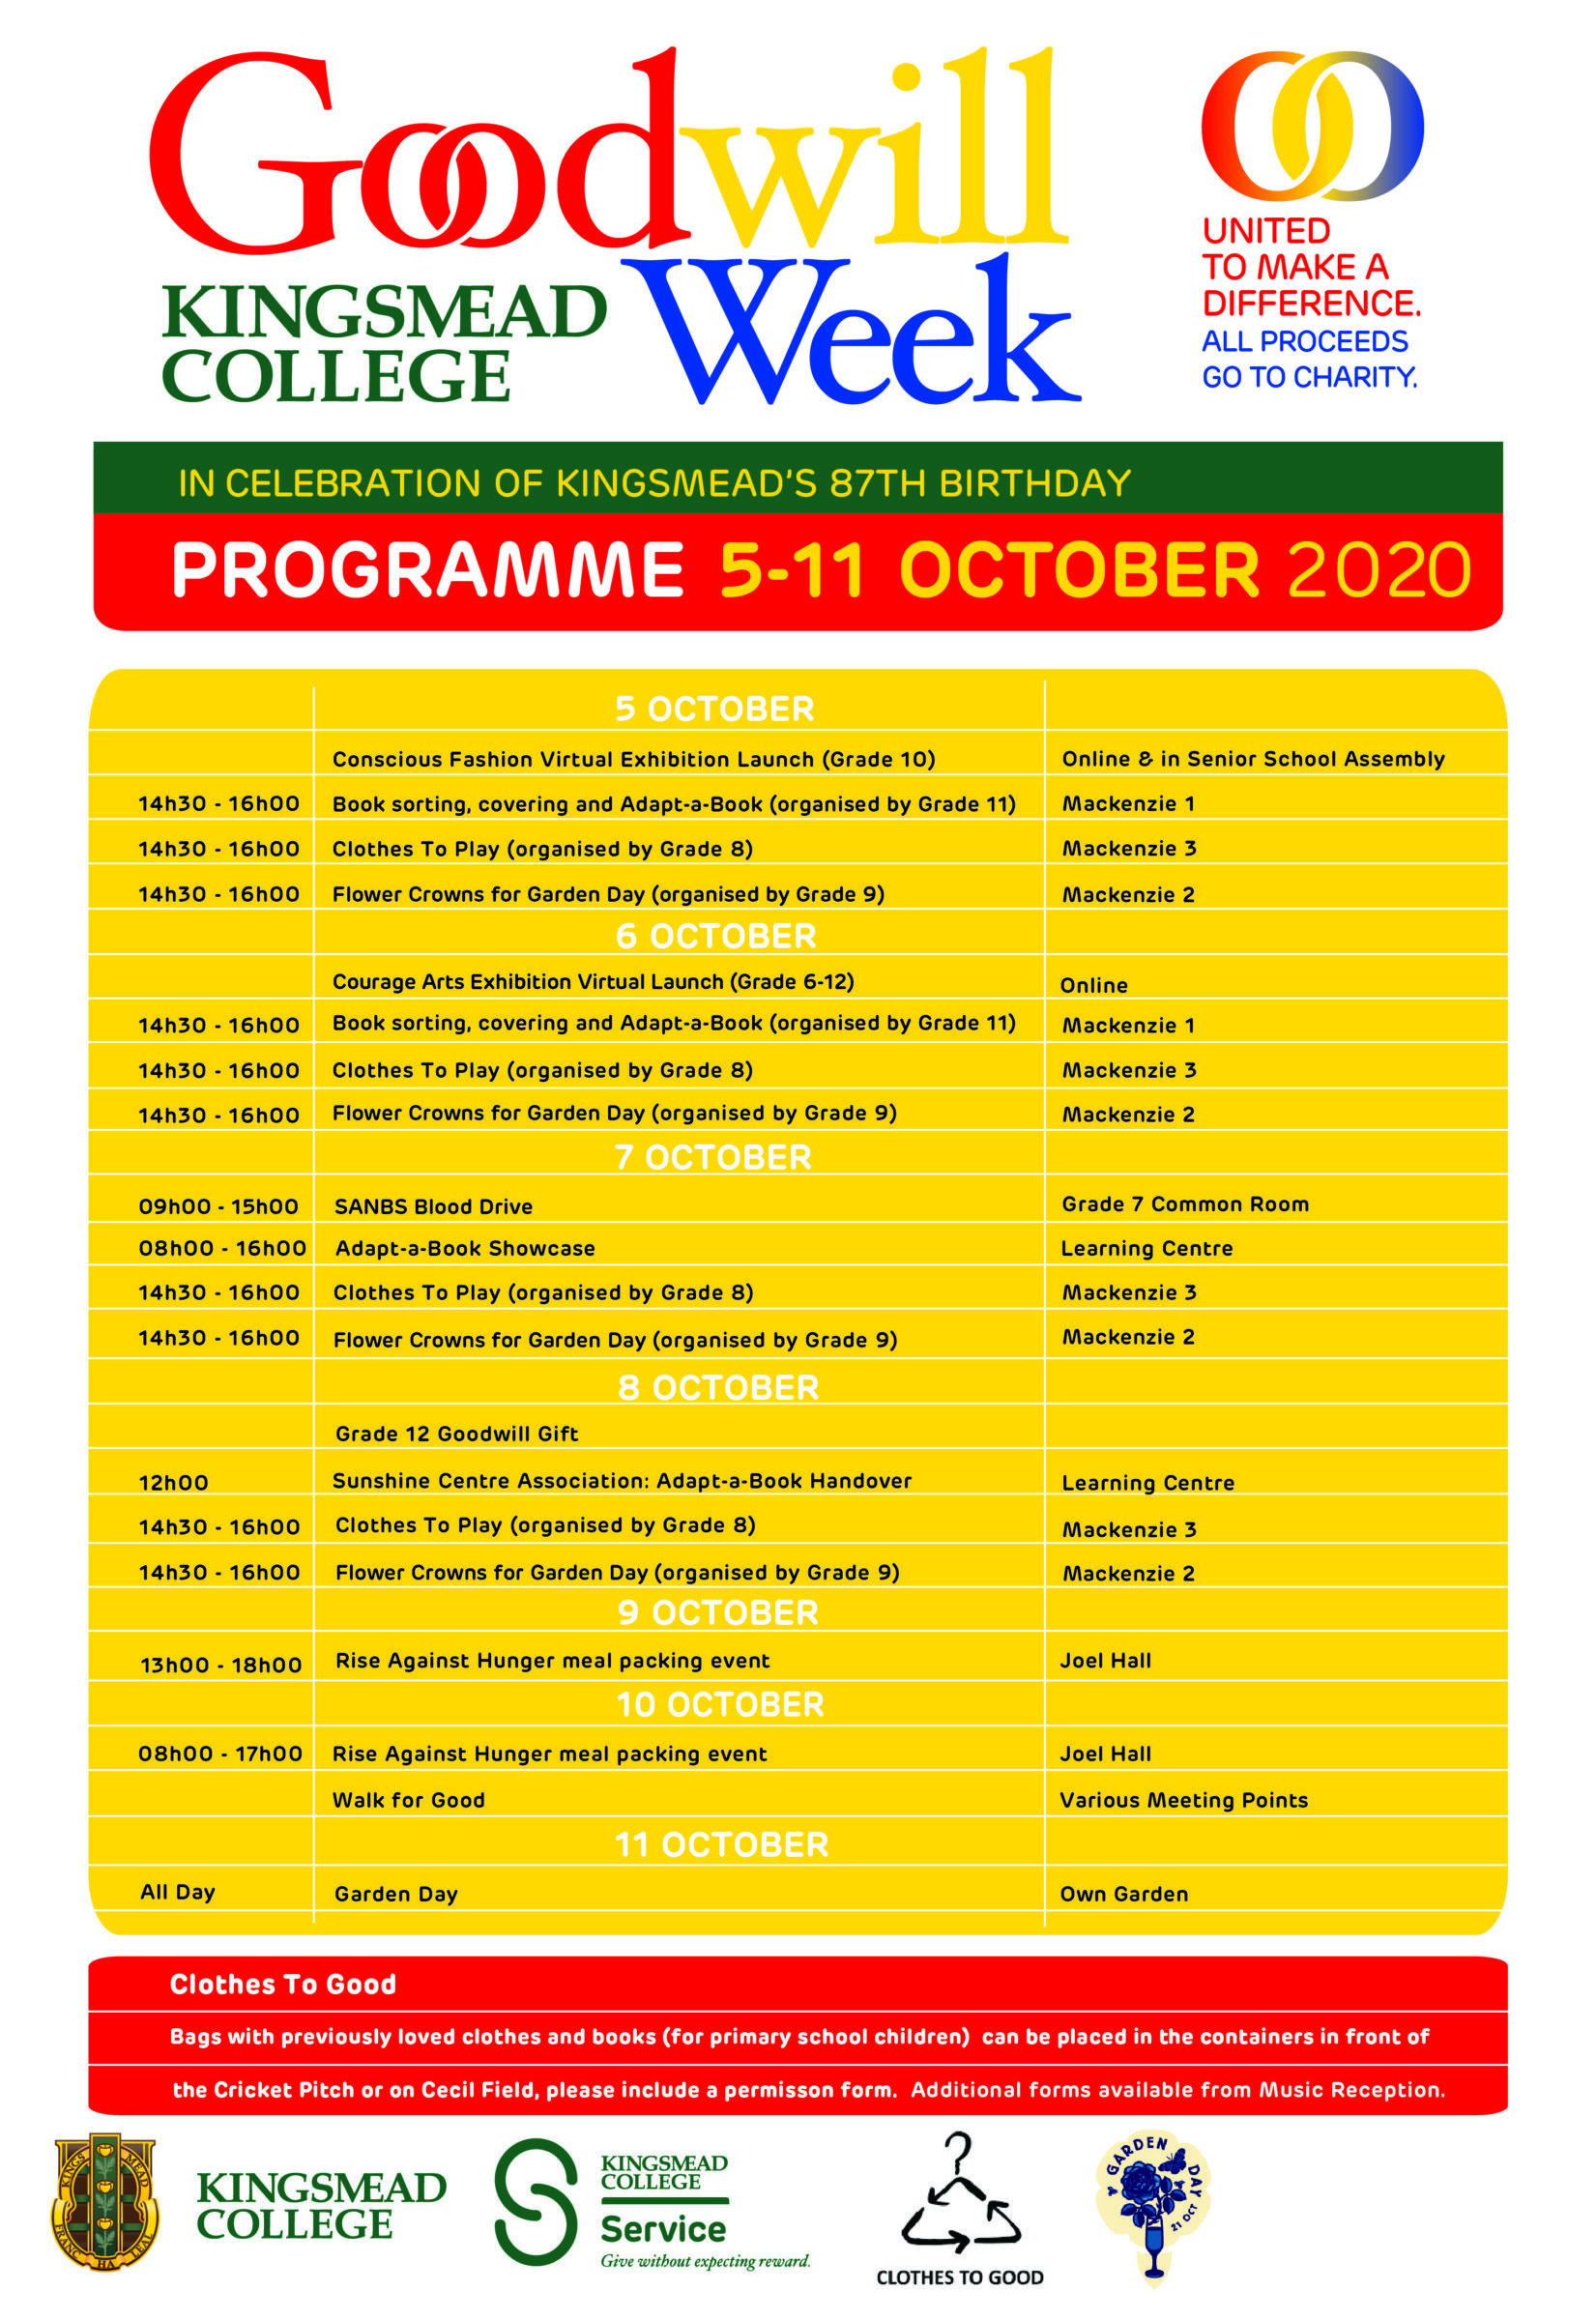 Goodwill Programme 2020 002 scaled e1600779978538 Kingsmead College